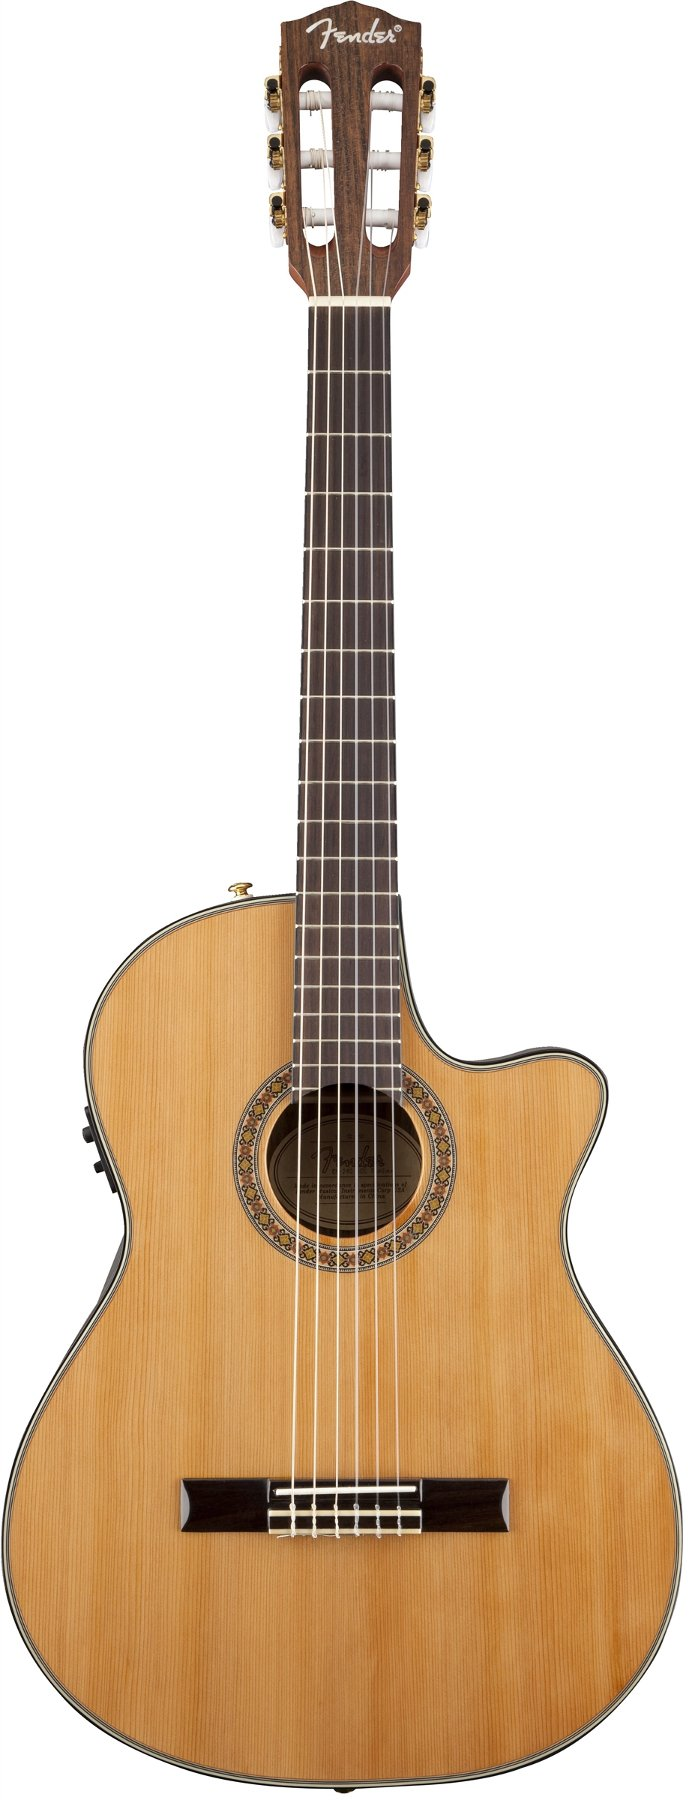 Thinline Classical Acoustic Guitar, Solid Cedar Top